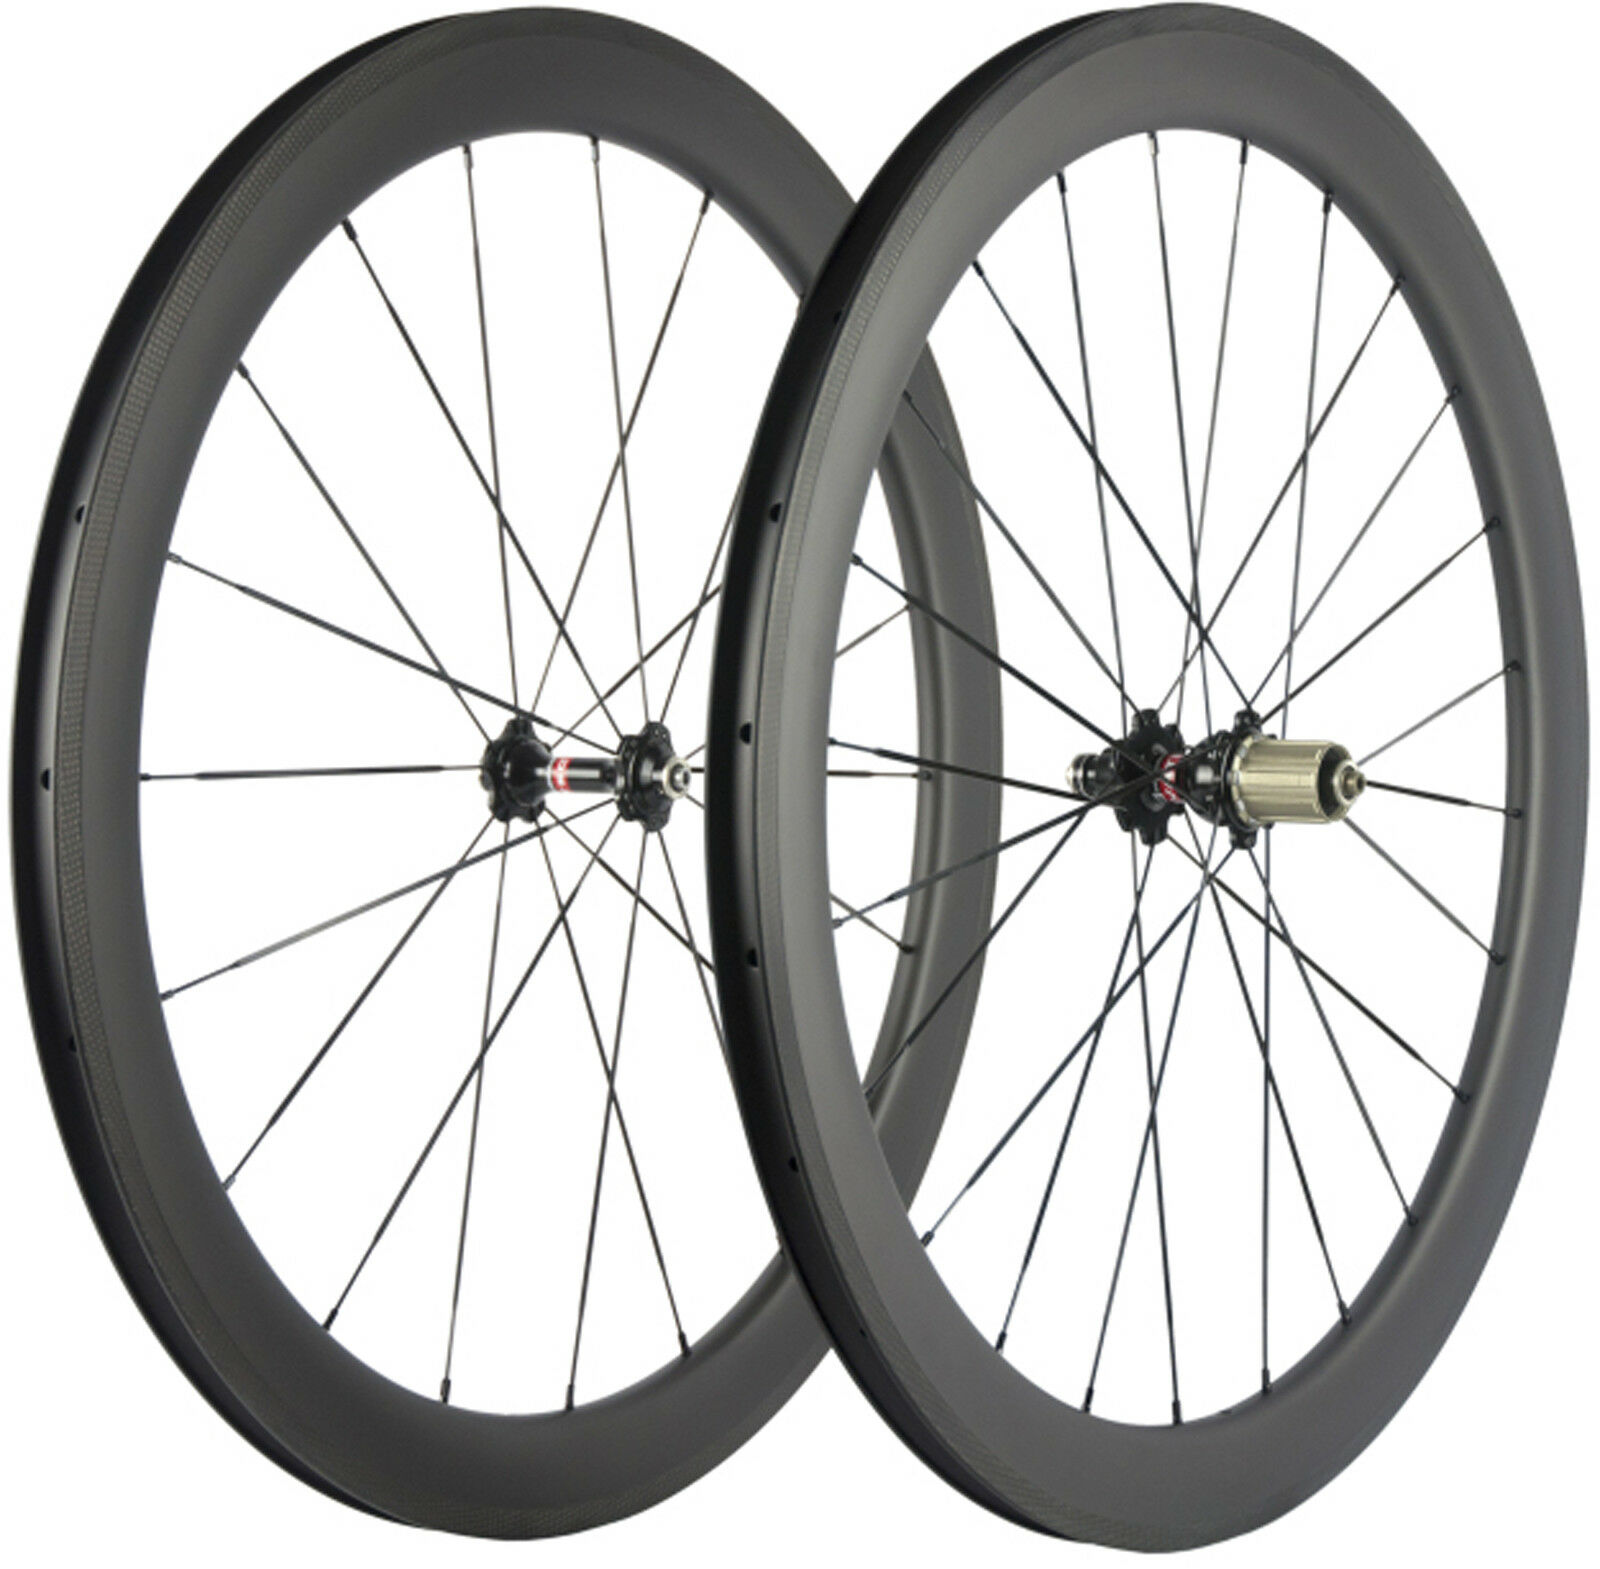 50mm Carbon Wheels Road  Bike Novatec 271 Hub Bicycle Wheelset UD Matte Glossy  factory direct and quick delivery